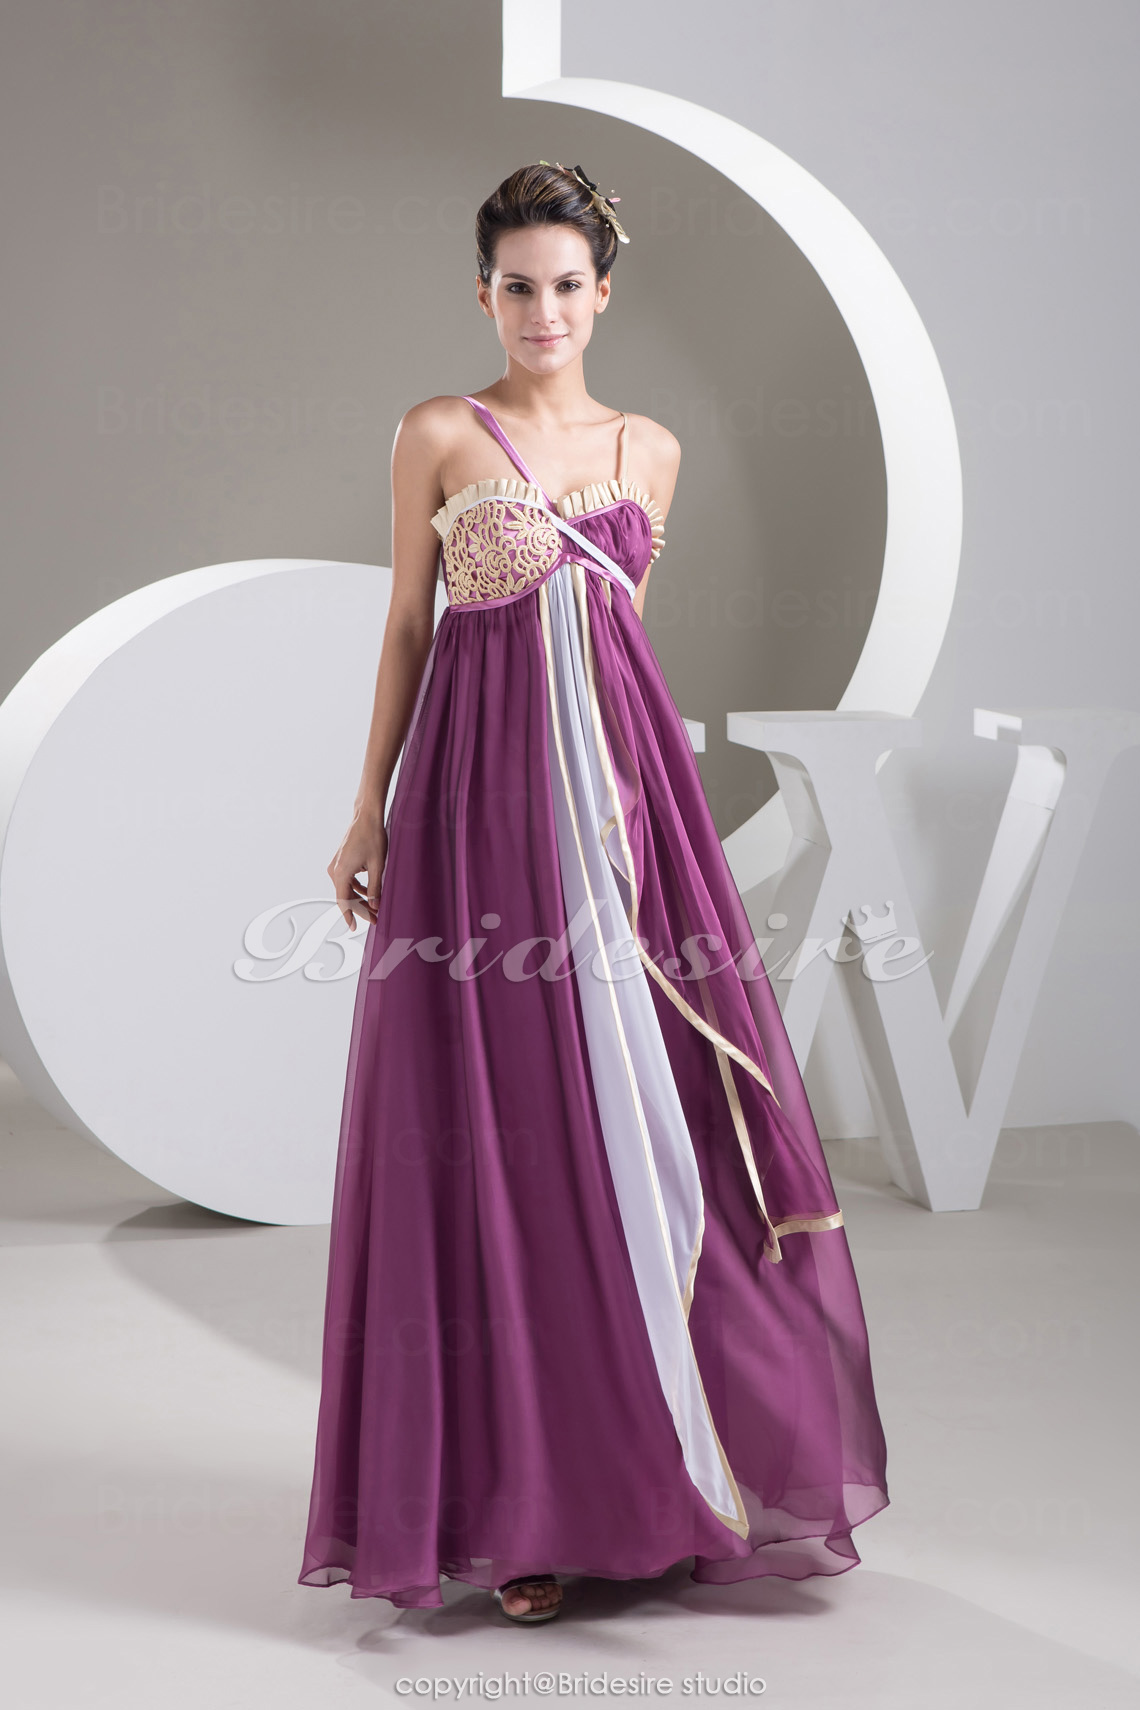 Sheath/Column Spaghetti Straps Floor-length Sleeveless Chiffon Stretch Satin Dress